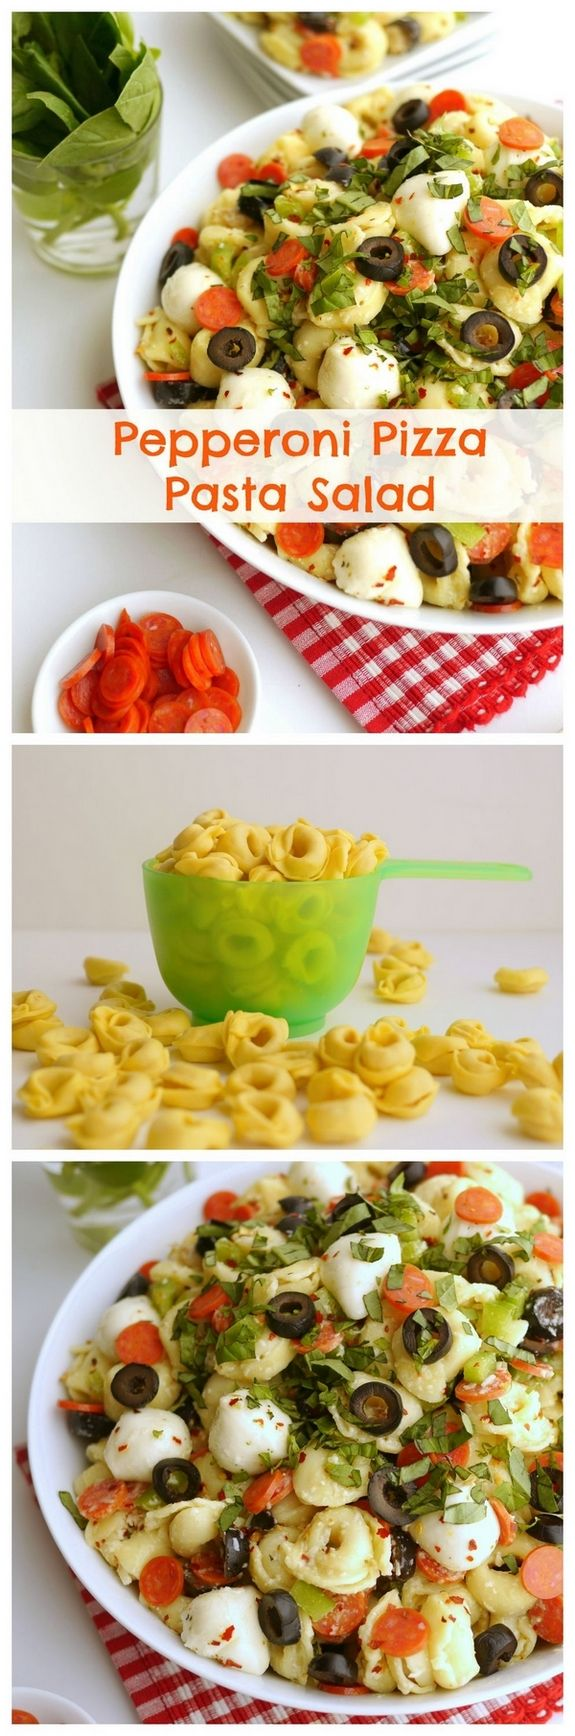 Pepperoni Pizza Pasta Salad is a great side dish for a potluck or any other gathering you can think of from NoblePig.com.